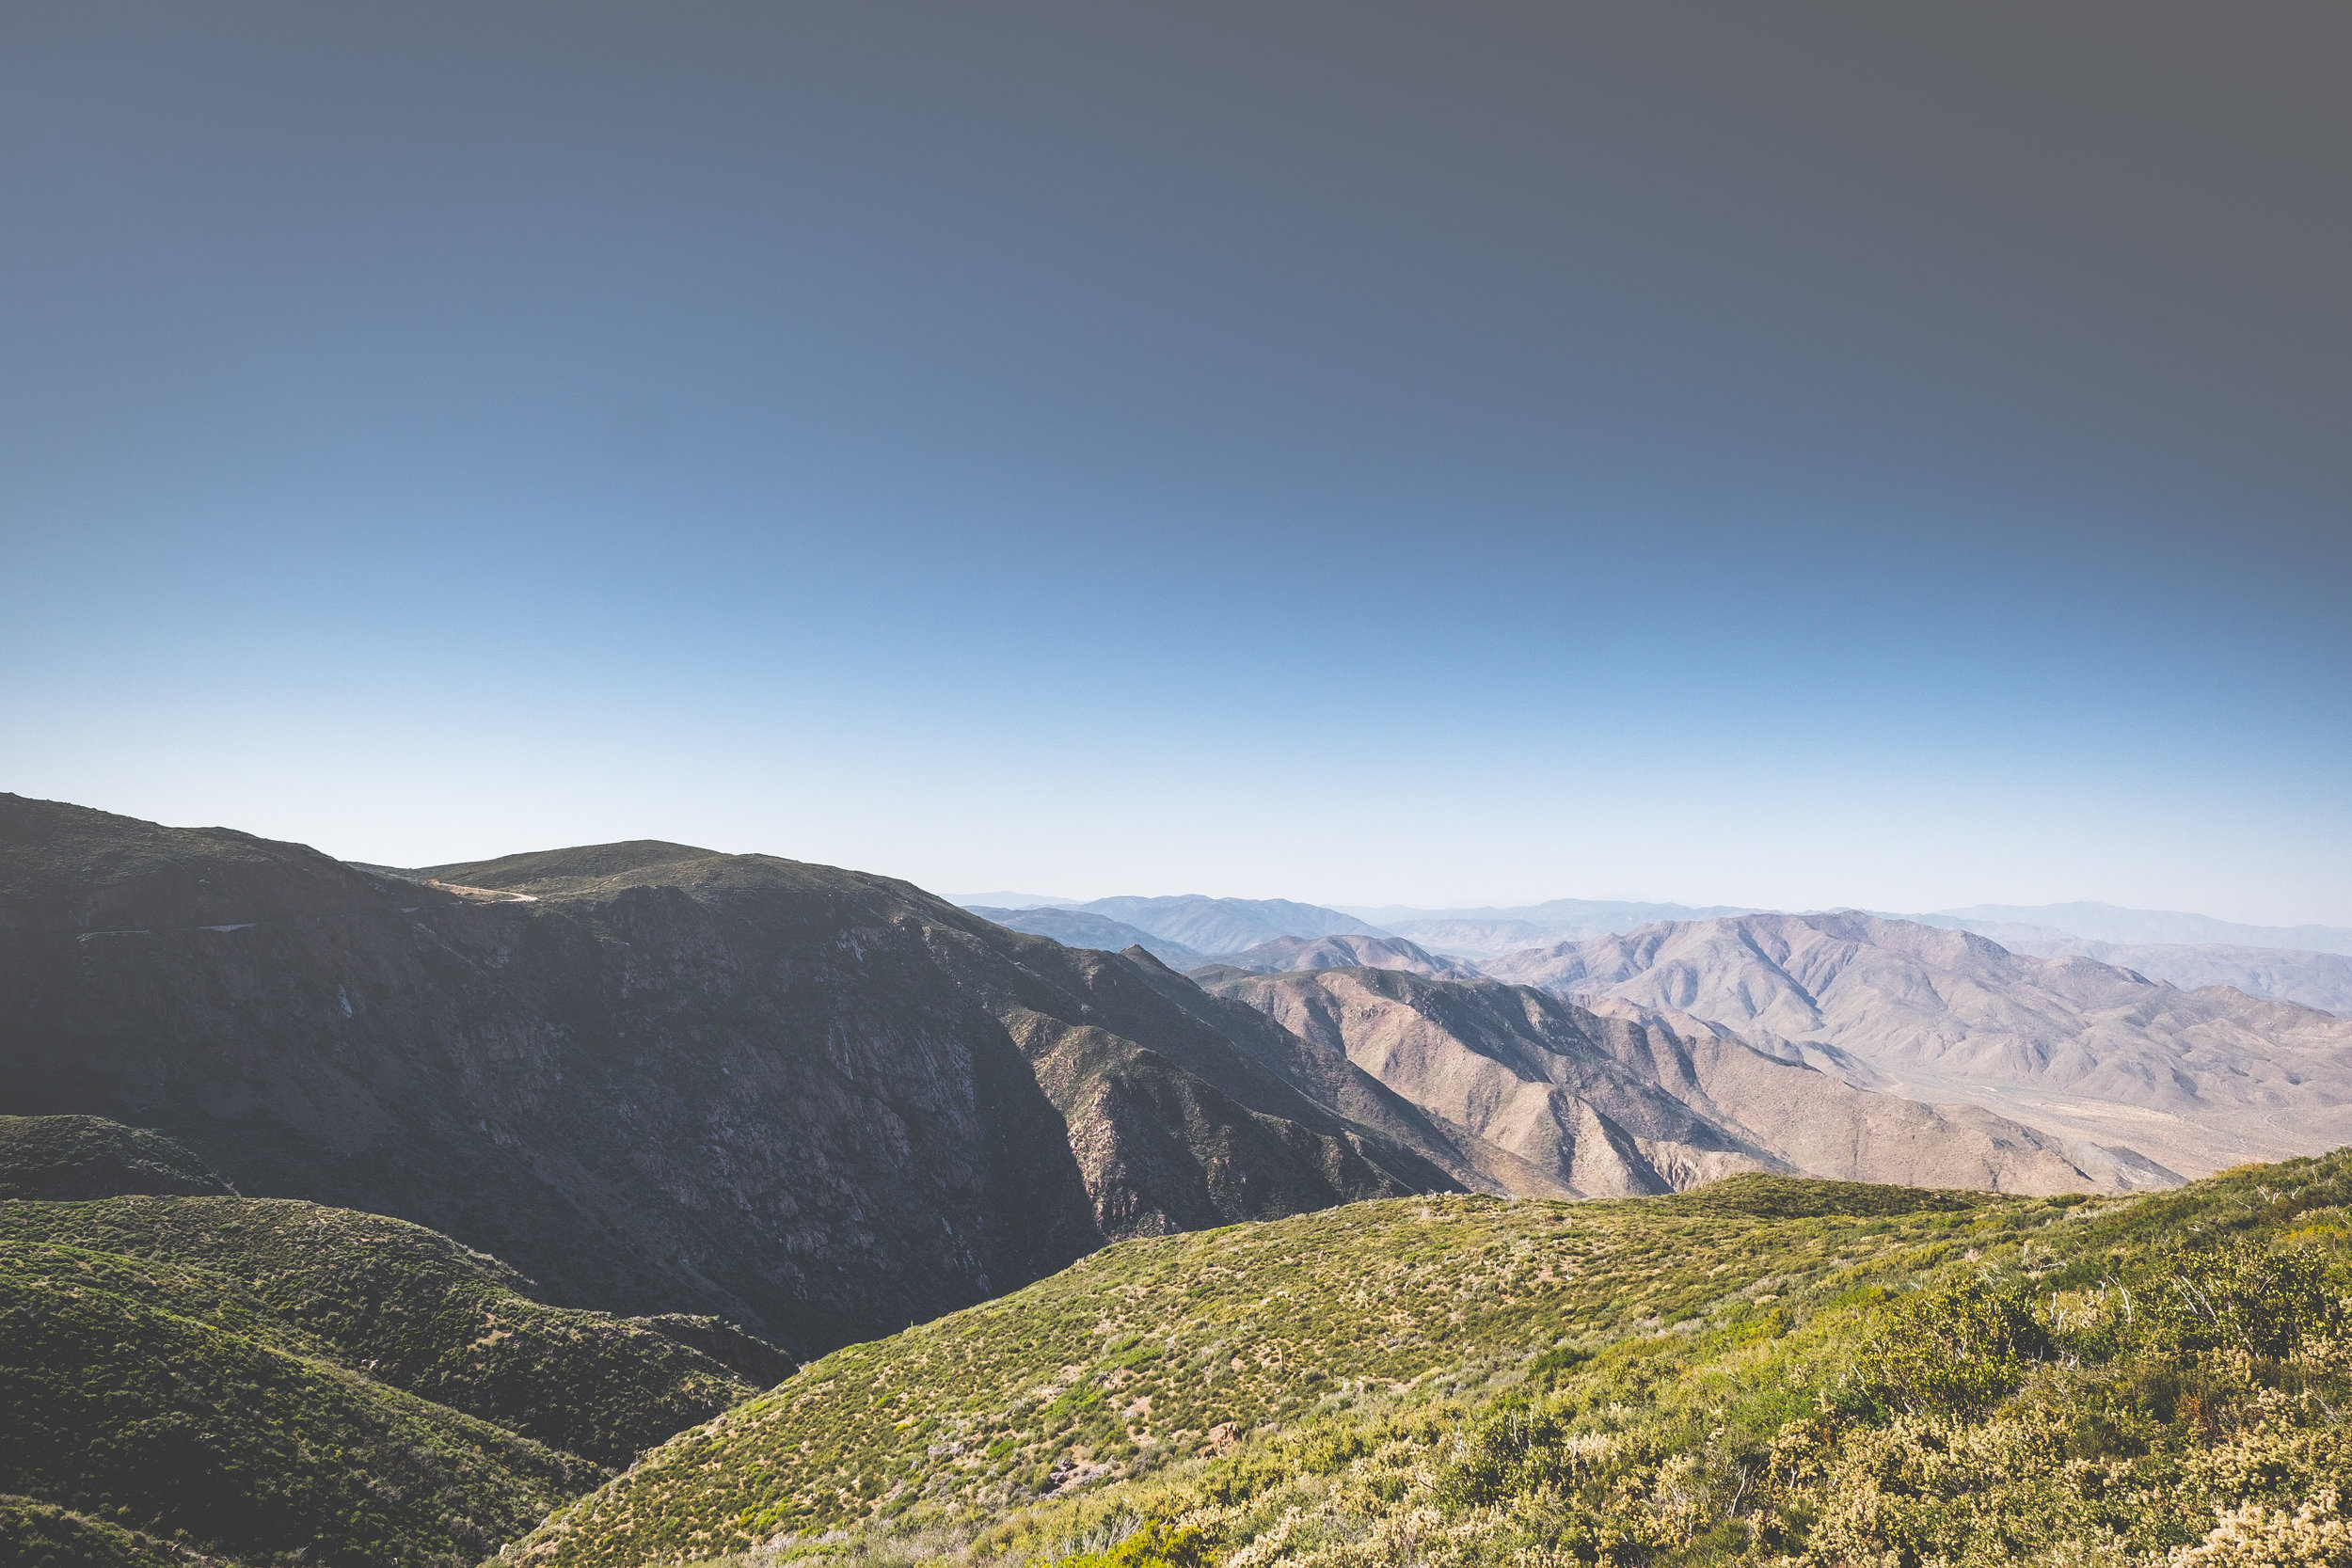 Looking down from the top of Mt. Laguna into the valley.